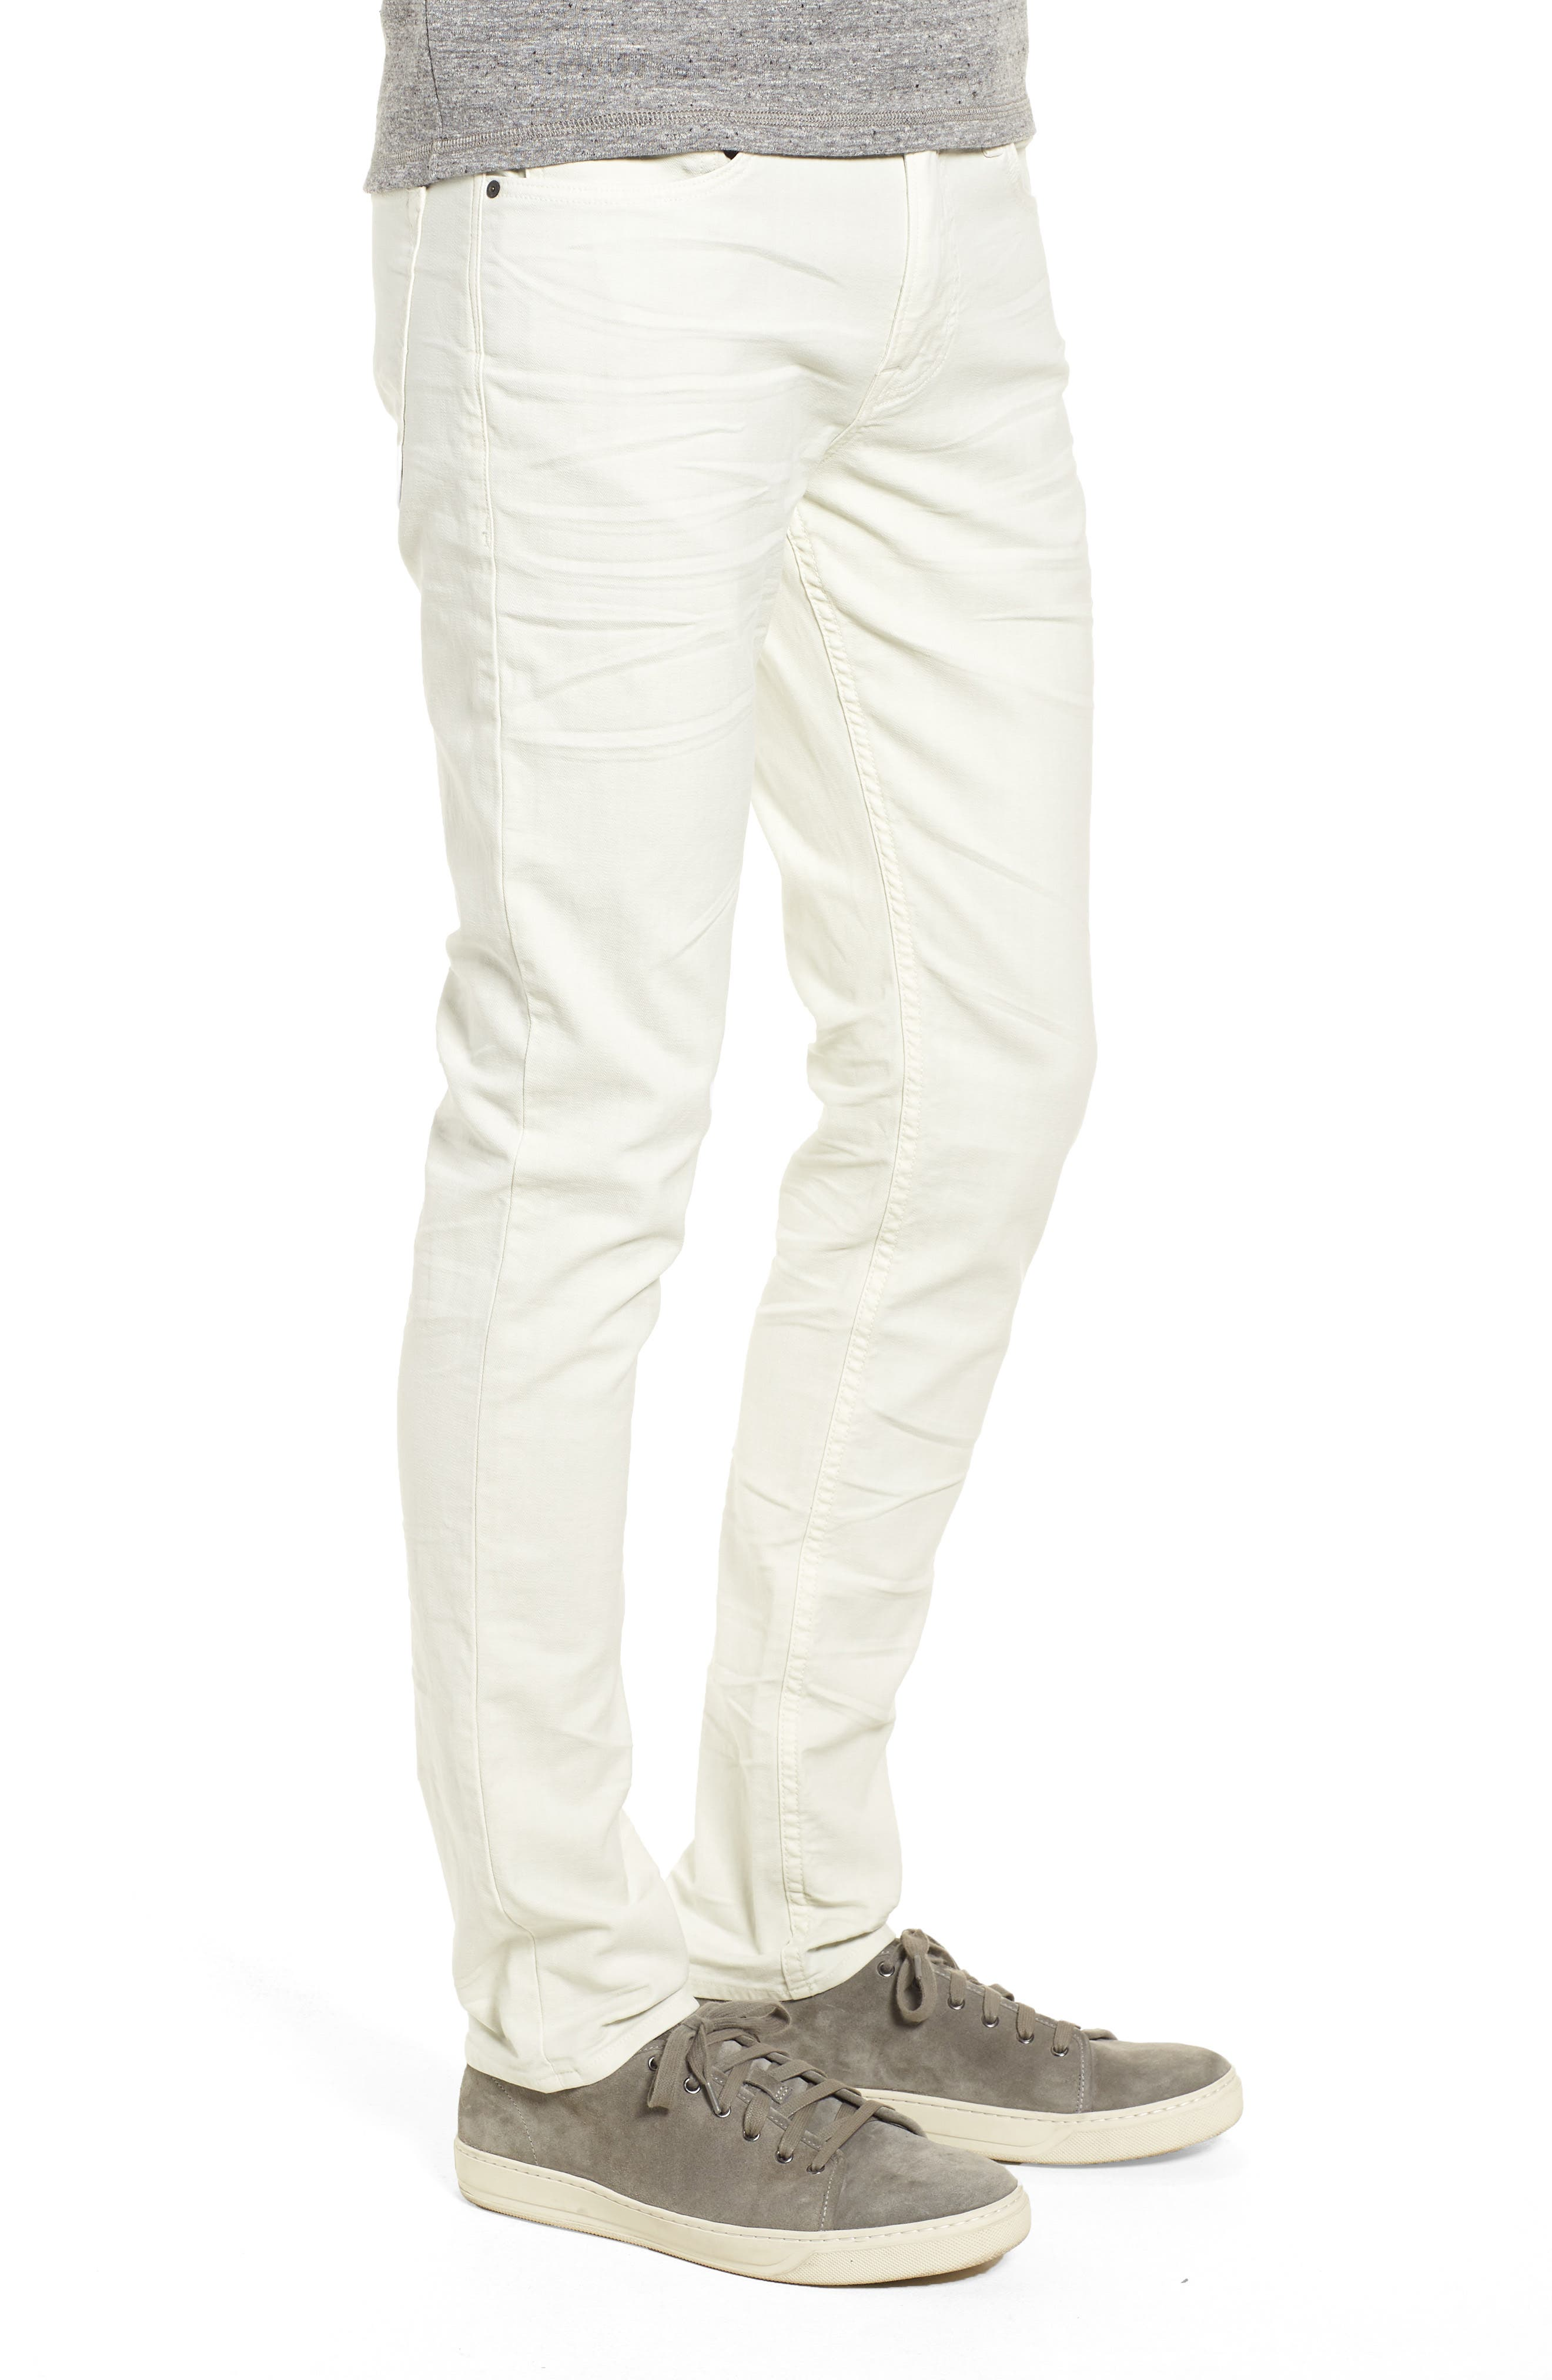 HUDSON JEANS, Axl Skinny Fit Jeans, Alternate thumbnail 3, color, DIRTY WHITE